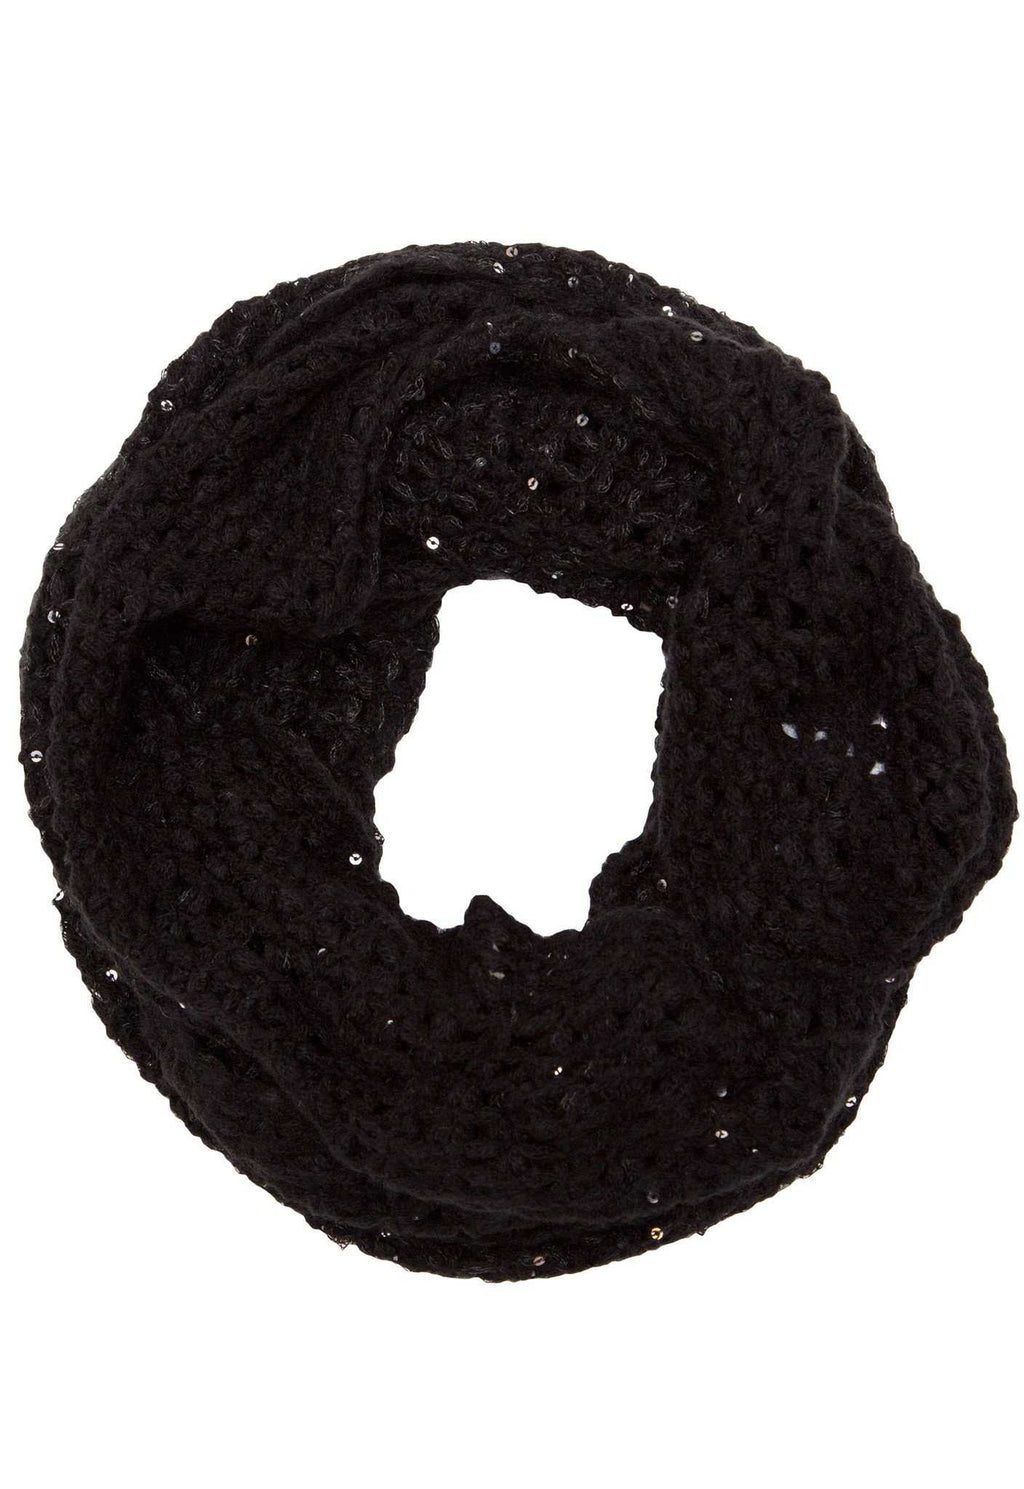 Accessories - Sinclair Infinity Scarf - Black